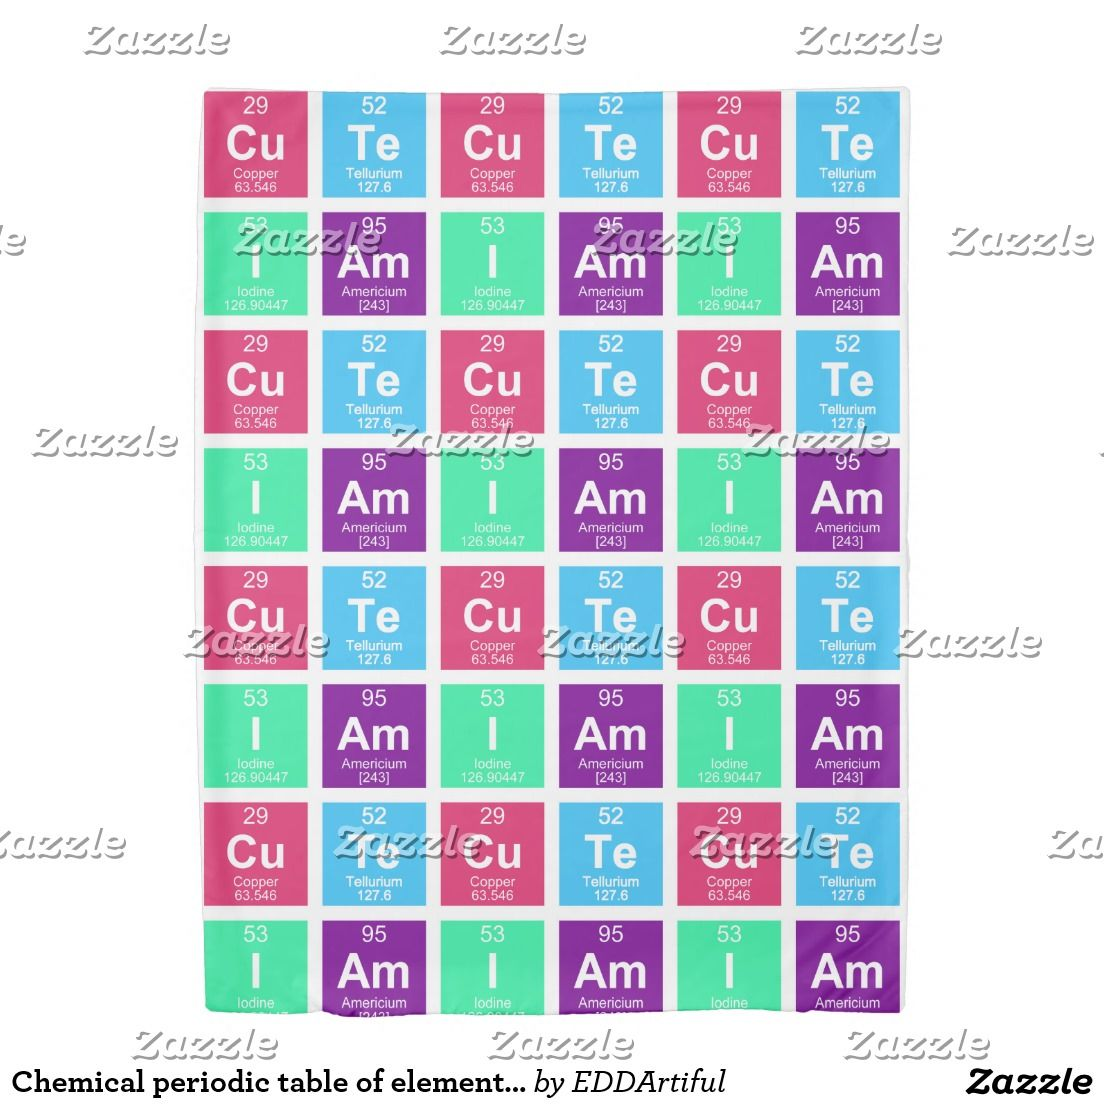 Chemical periodic table of elements iam cute duvet cover chemical periodic table of elements iam cute duvet cover urtaz Image collections